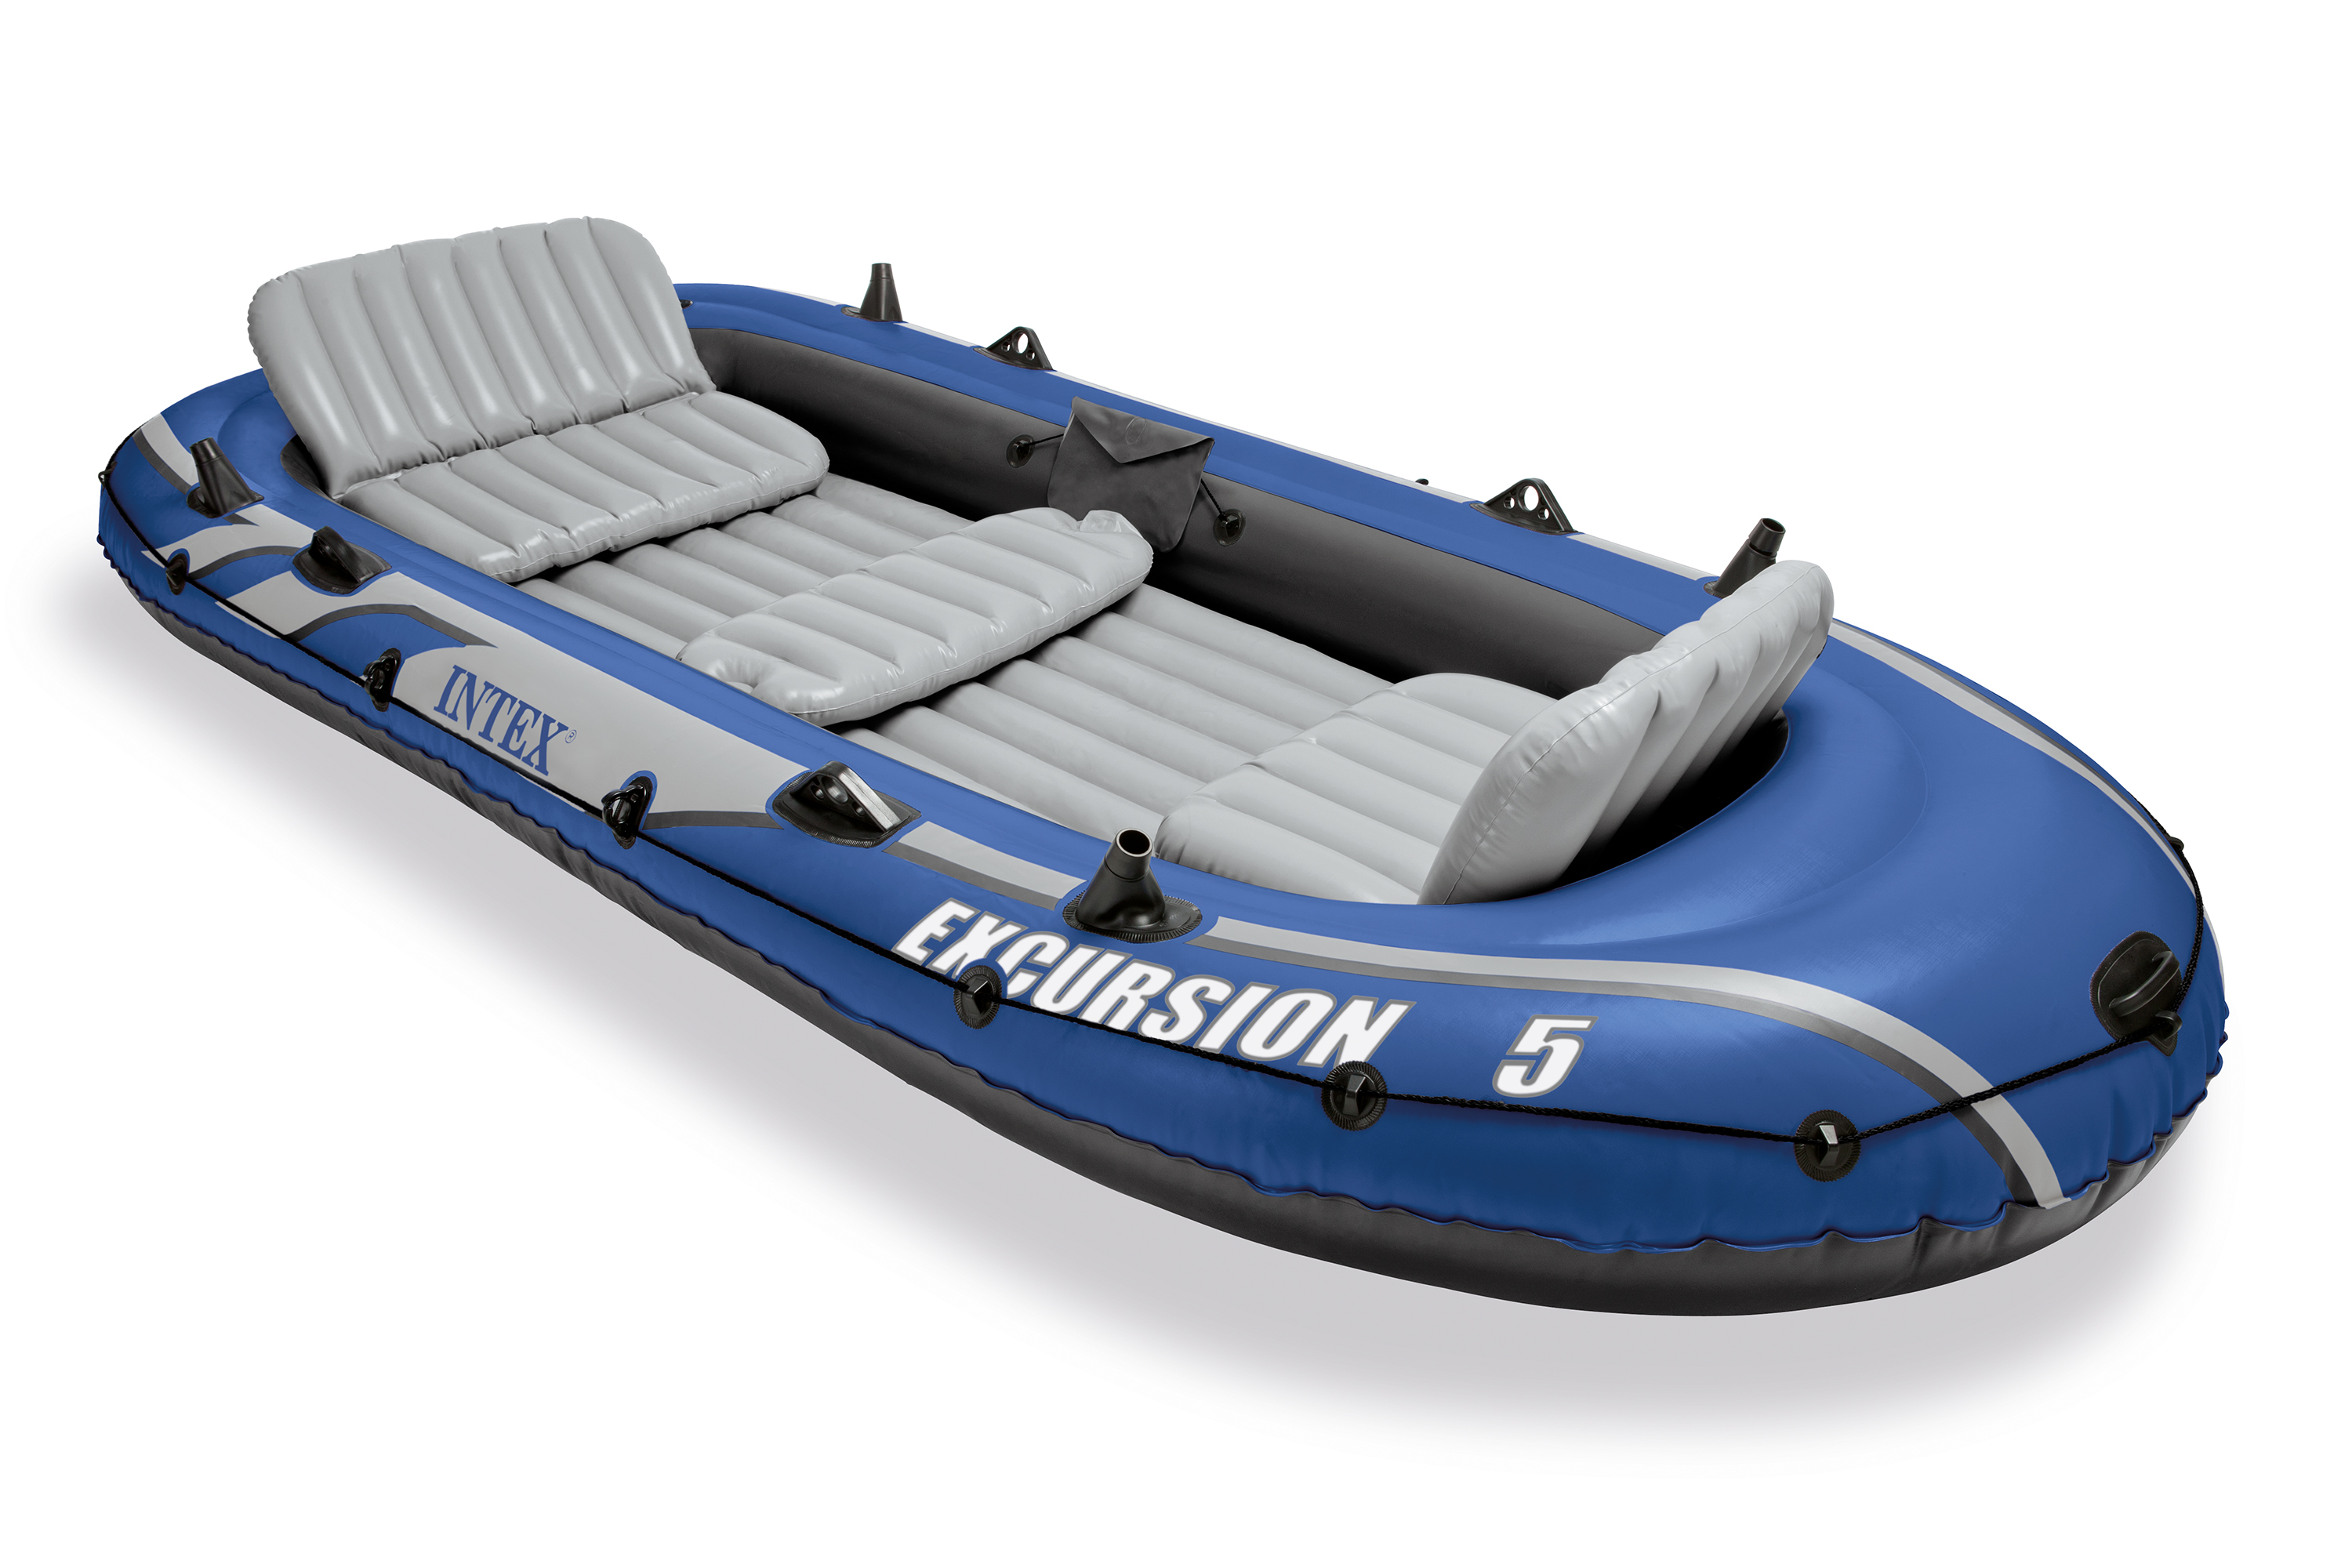 Intex excursion 5 person inflatable fishing boat set with for Wood floor intex excursion 5